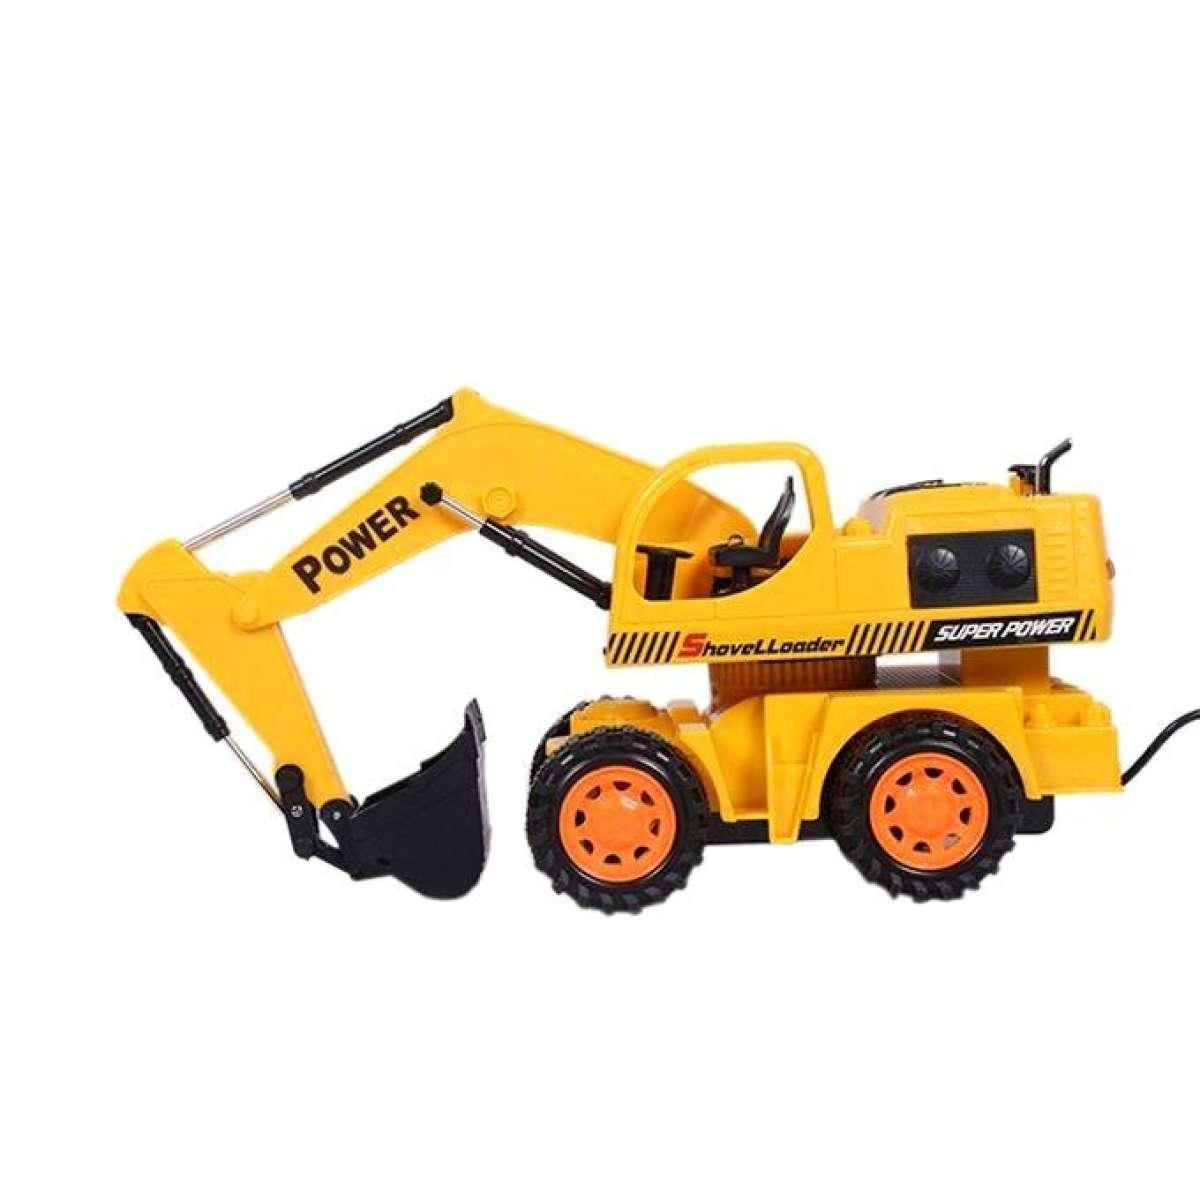 Remote Controlled Wheel Excavator - Yellow